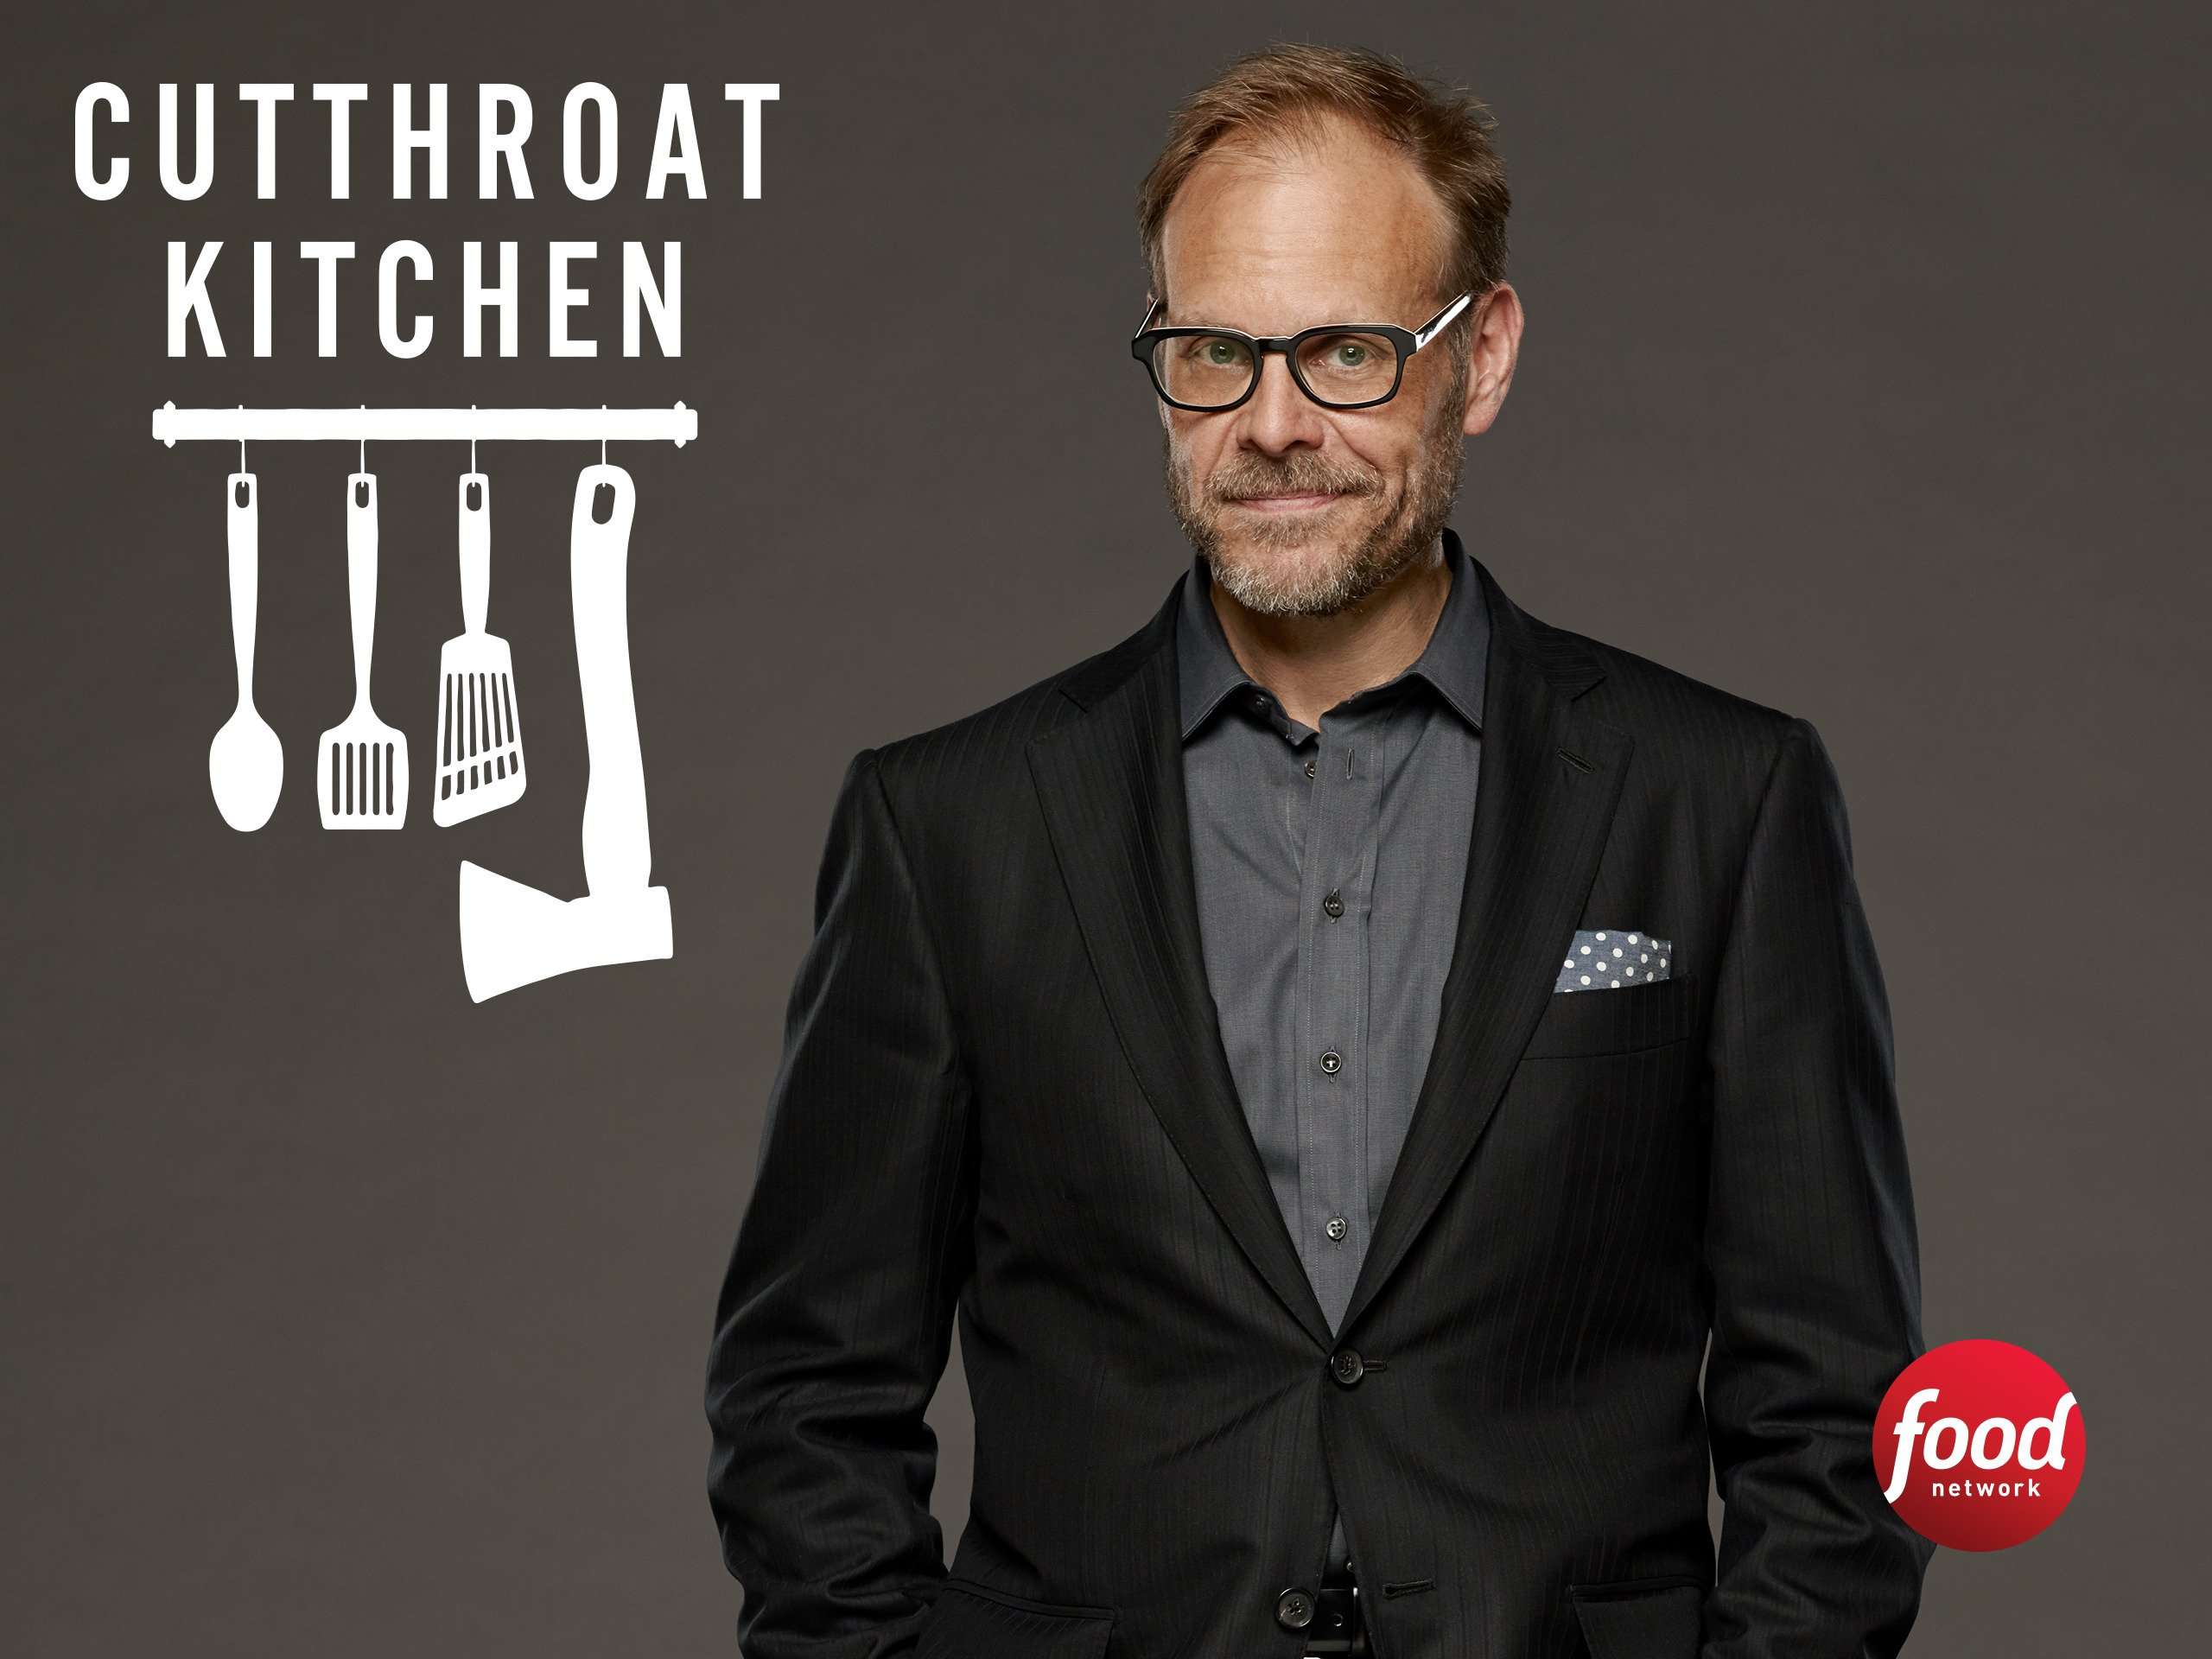 amazoncom cutthroat kitchen season 1 amazon digital services llc - Cutthroat Kitchen Online